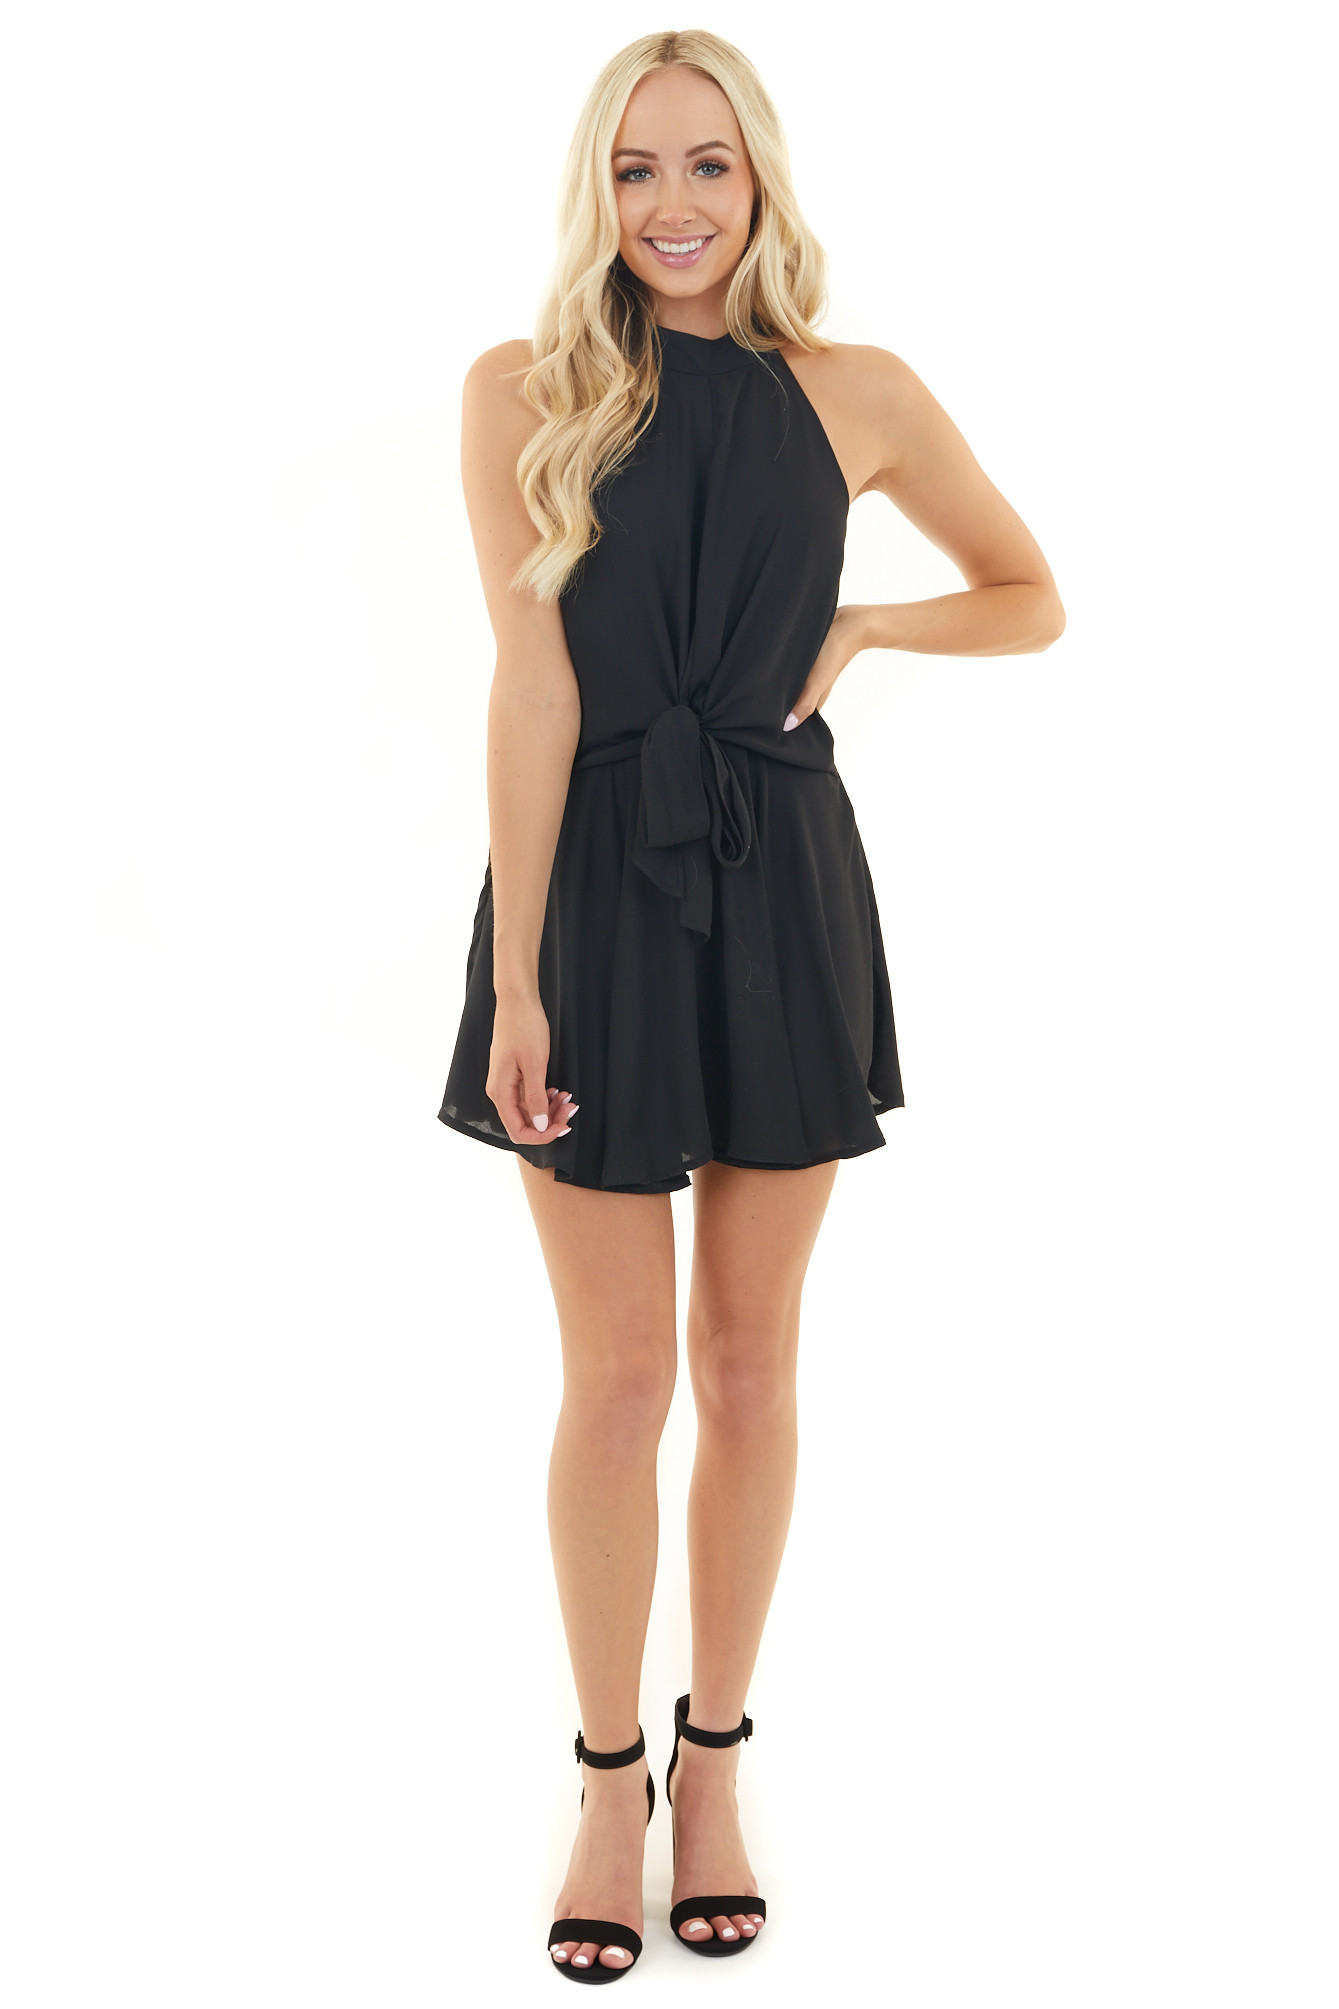 Black Halter Neck Romper with Keyhole and Tie Details